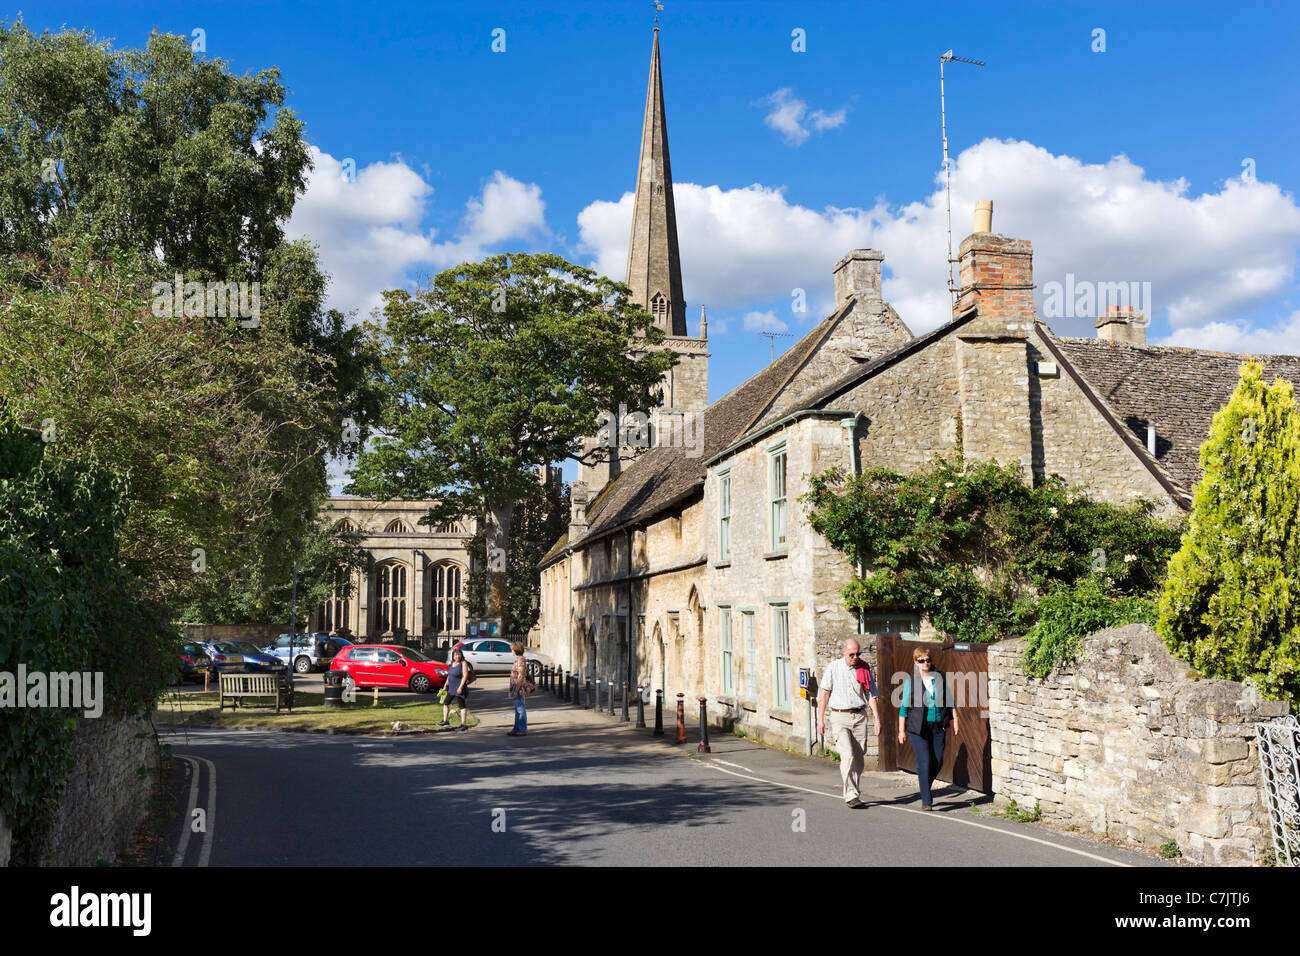 View towards St John the Baptist parish church on Church Lane in the Cotswold town of Burford, Oxfordshire, England, - Stock Image